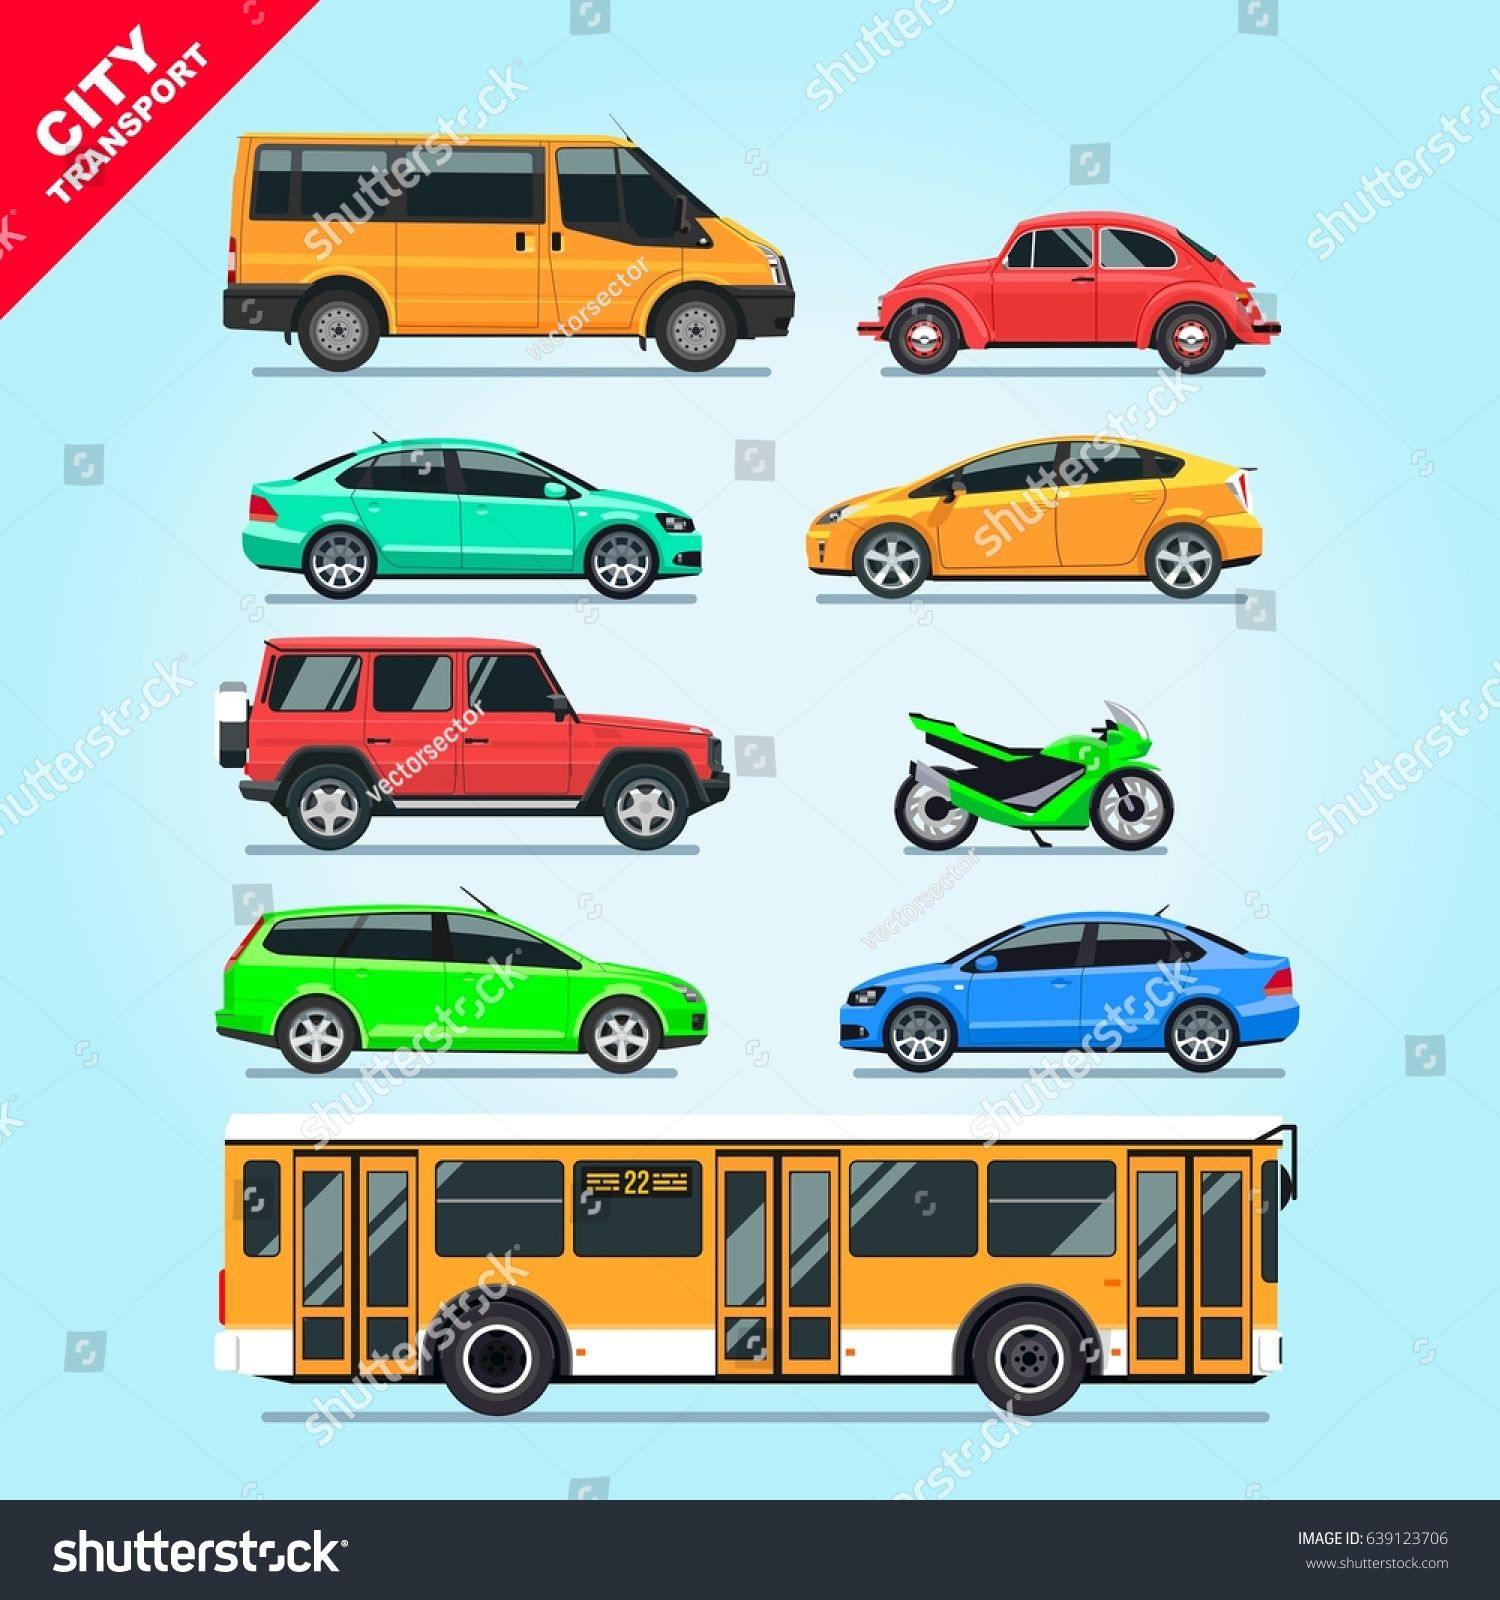 City Transport Set Flat Isolated Cars Motorcycle Van Bus Taxi On Blue Background Illustration Multicolore Transportation Layout Design Inspiration Toy Car